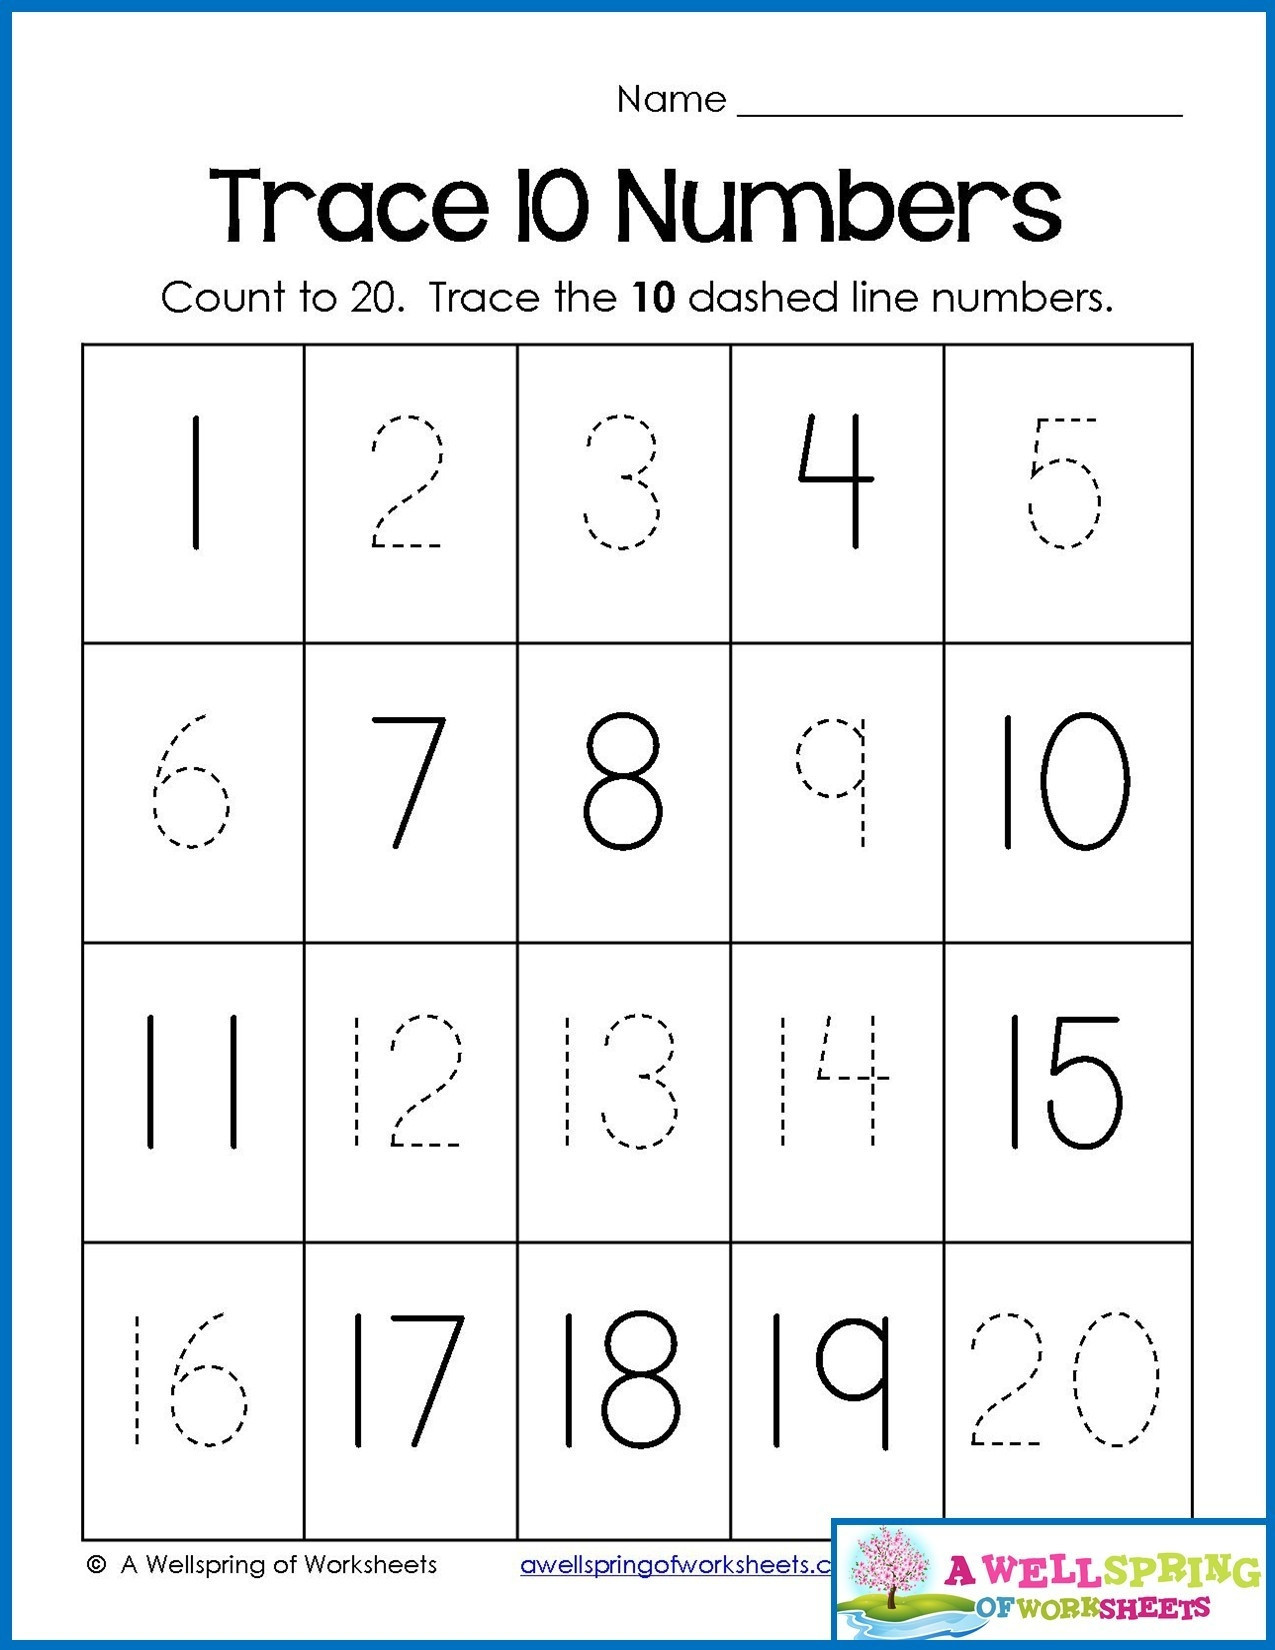 Counting Worksheets Preschool 4 Counting Worksheets Preschool 1 20 Worksheets Schools